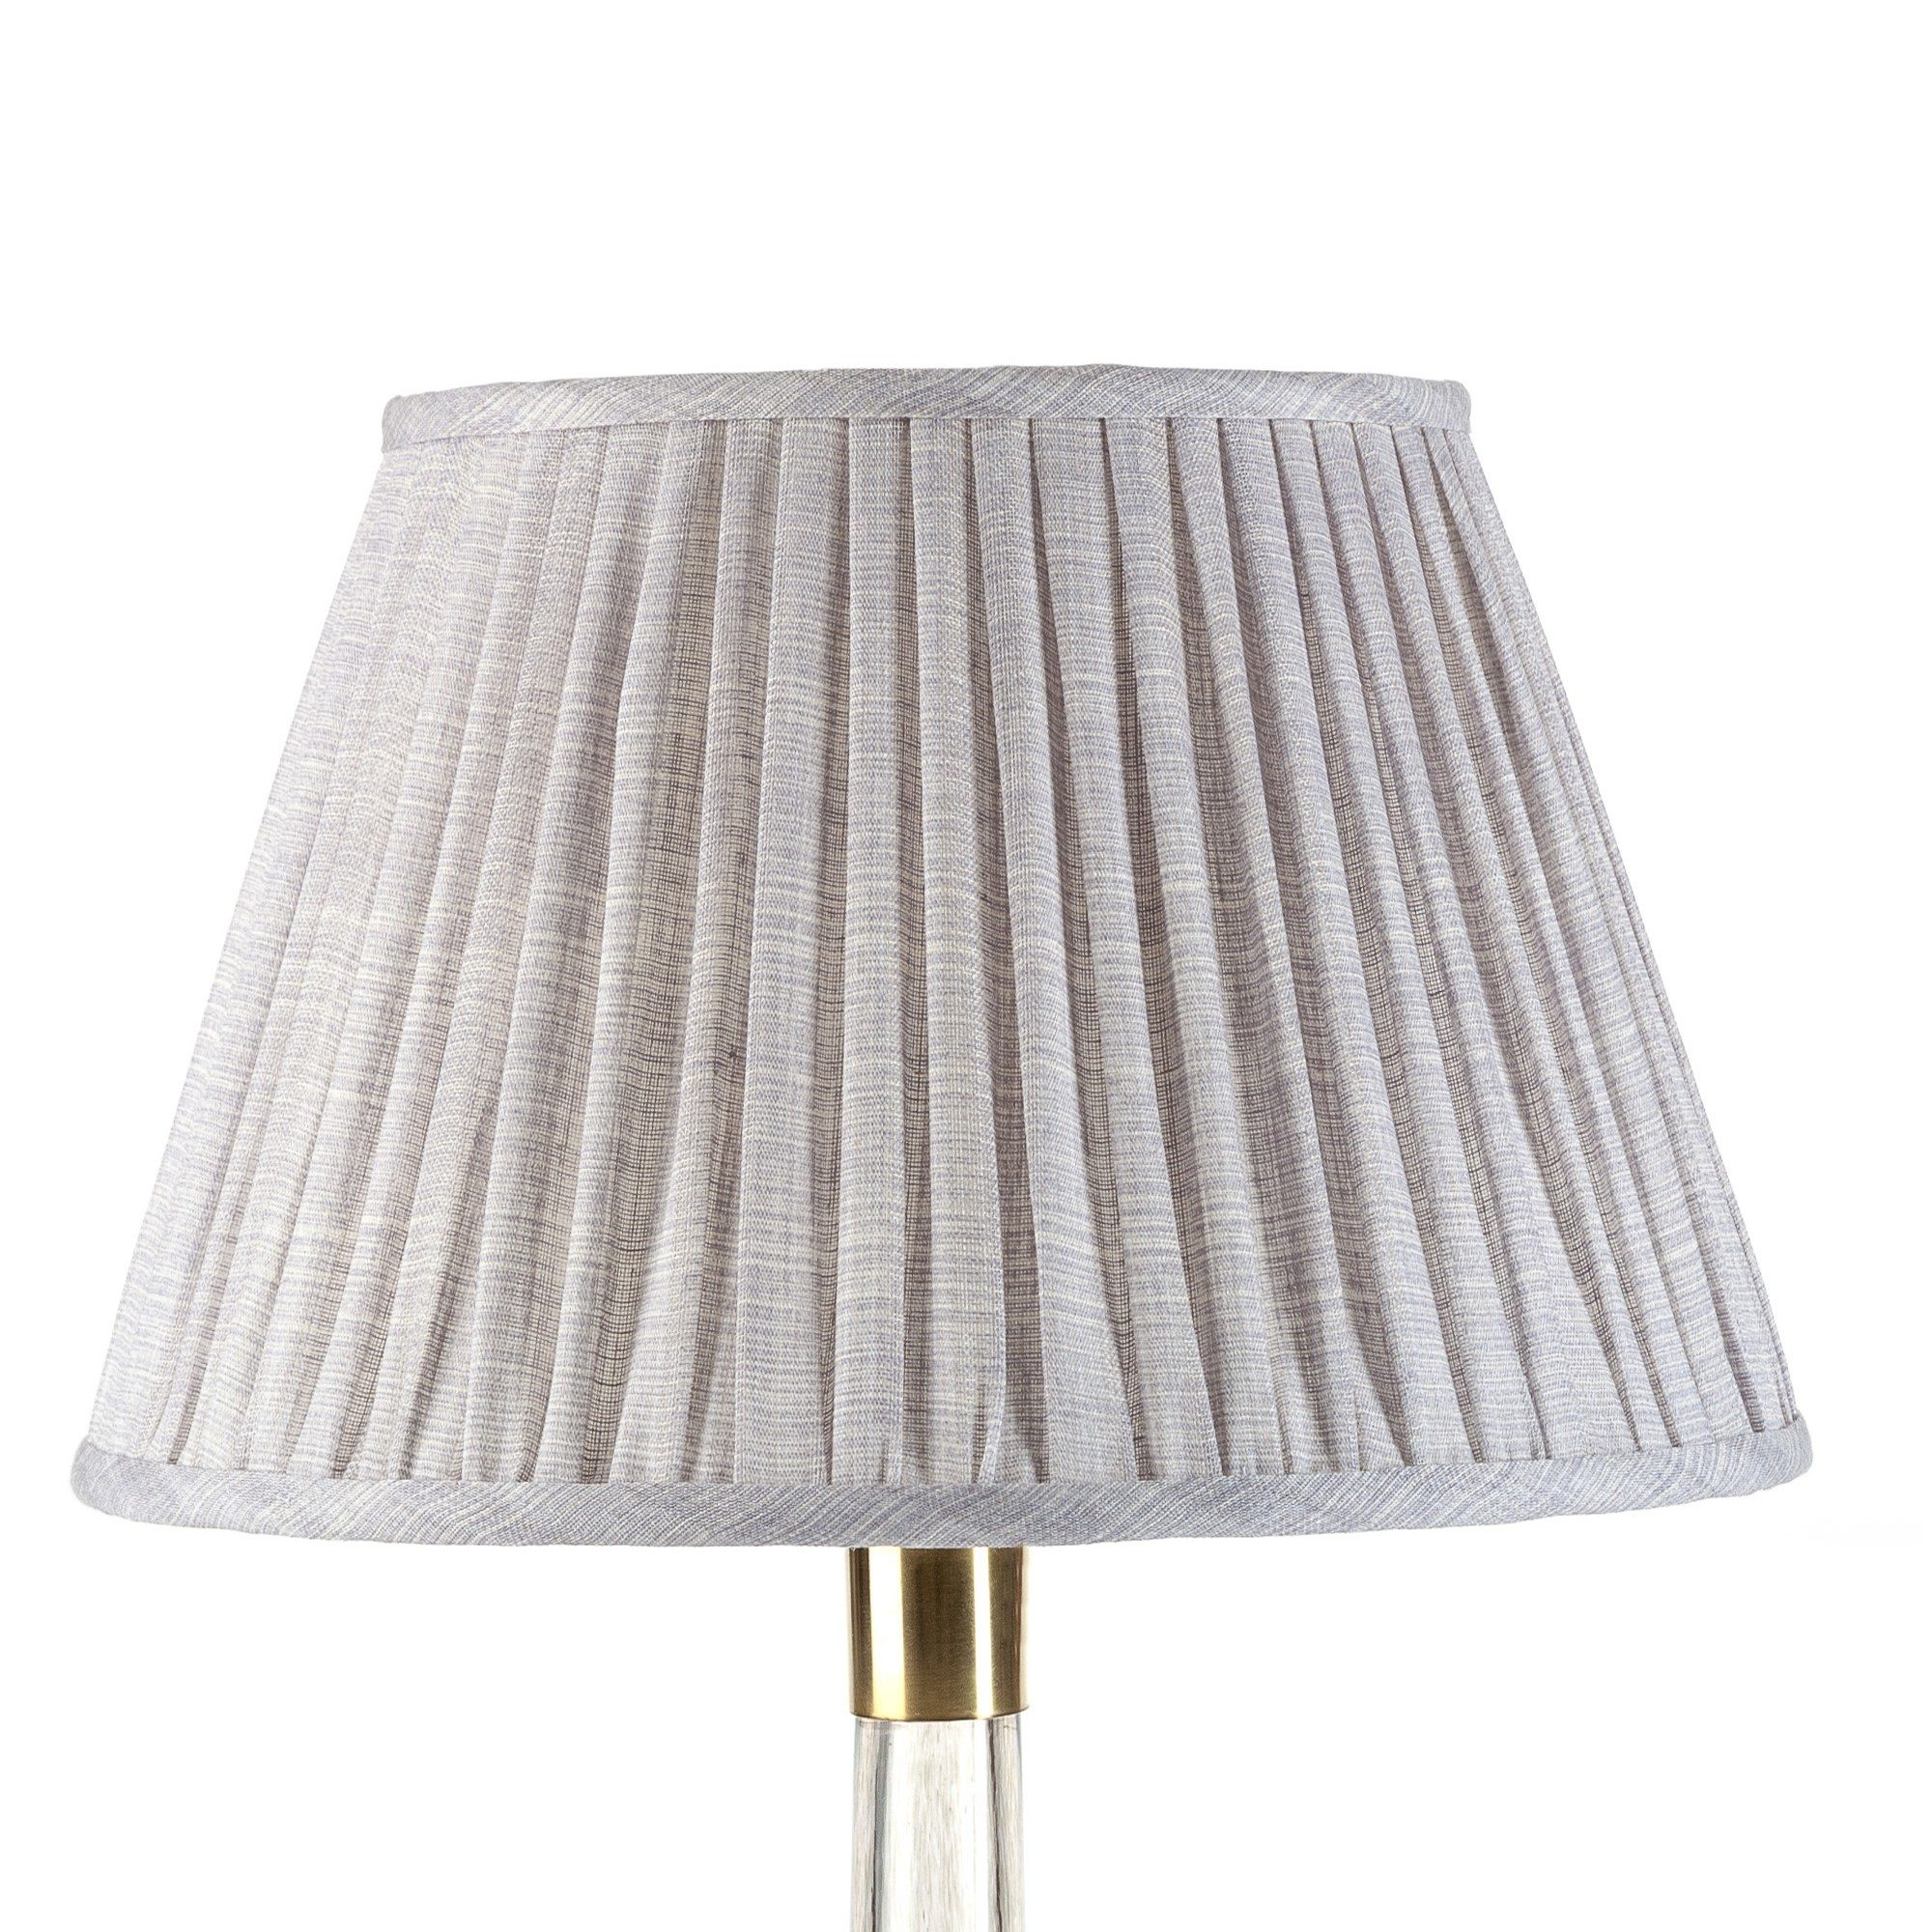 Empire Gathered Lampshade in Pewter Moire 045-1